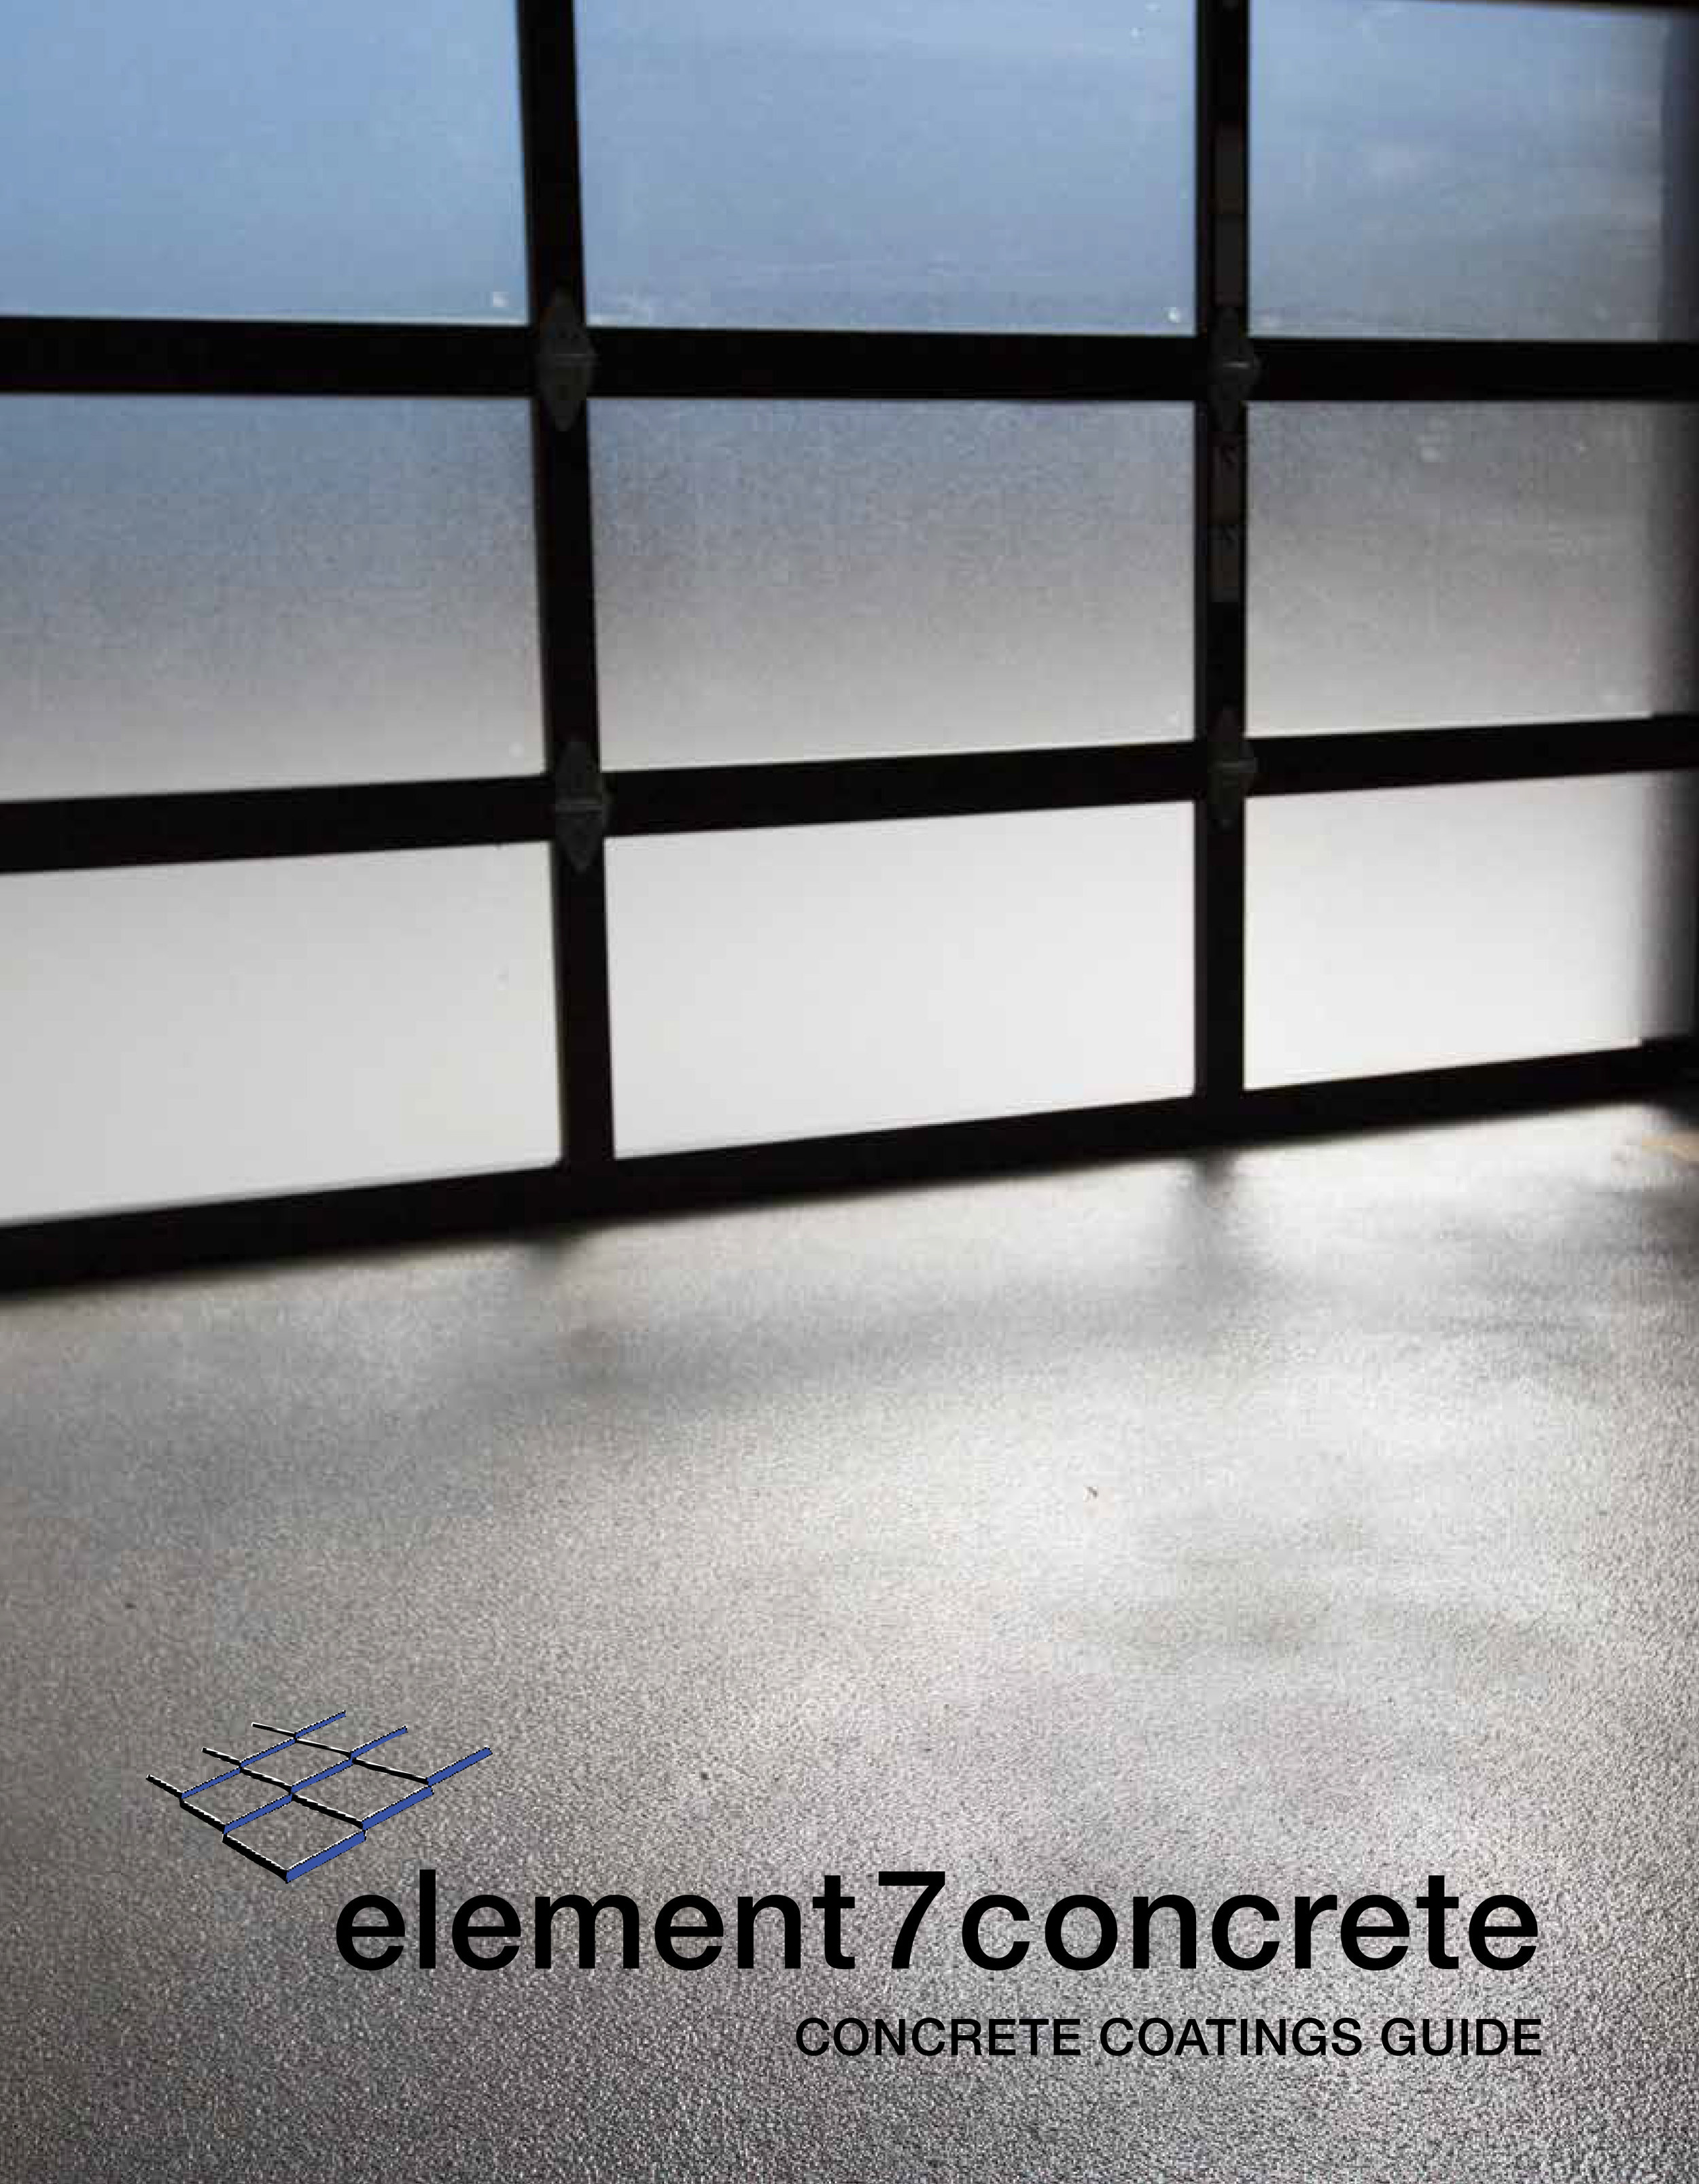 View our concrete coatings guide. - Contact us for custom sample sets for your sales office.